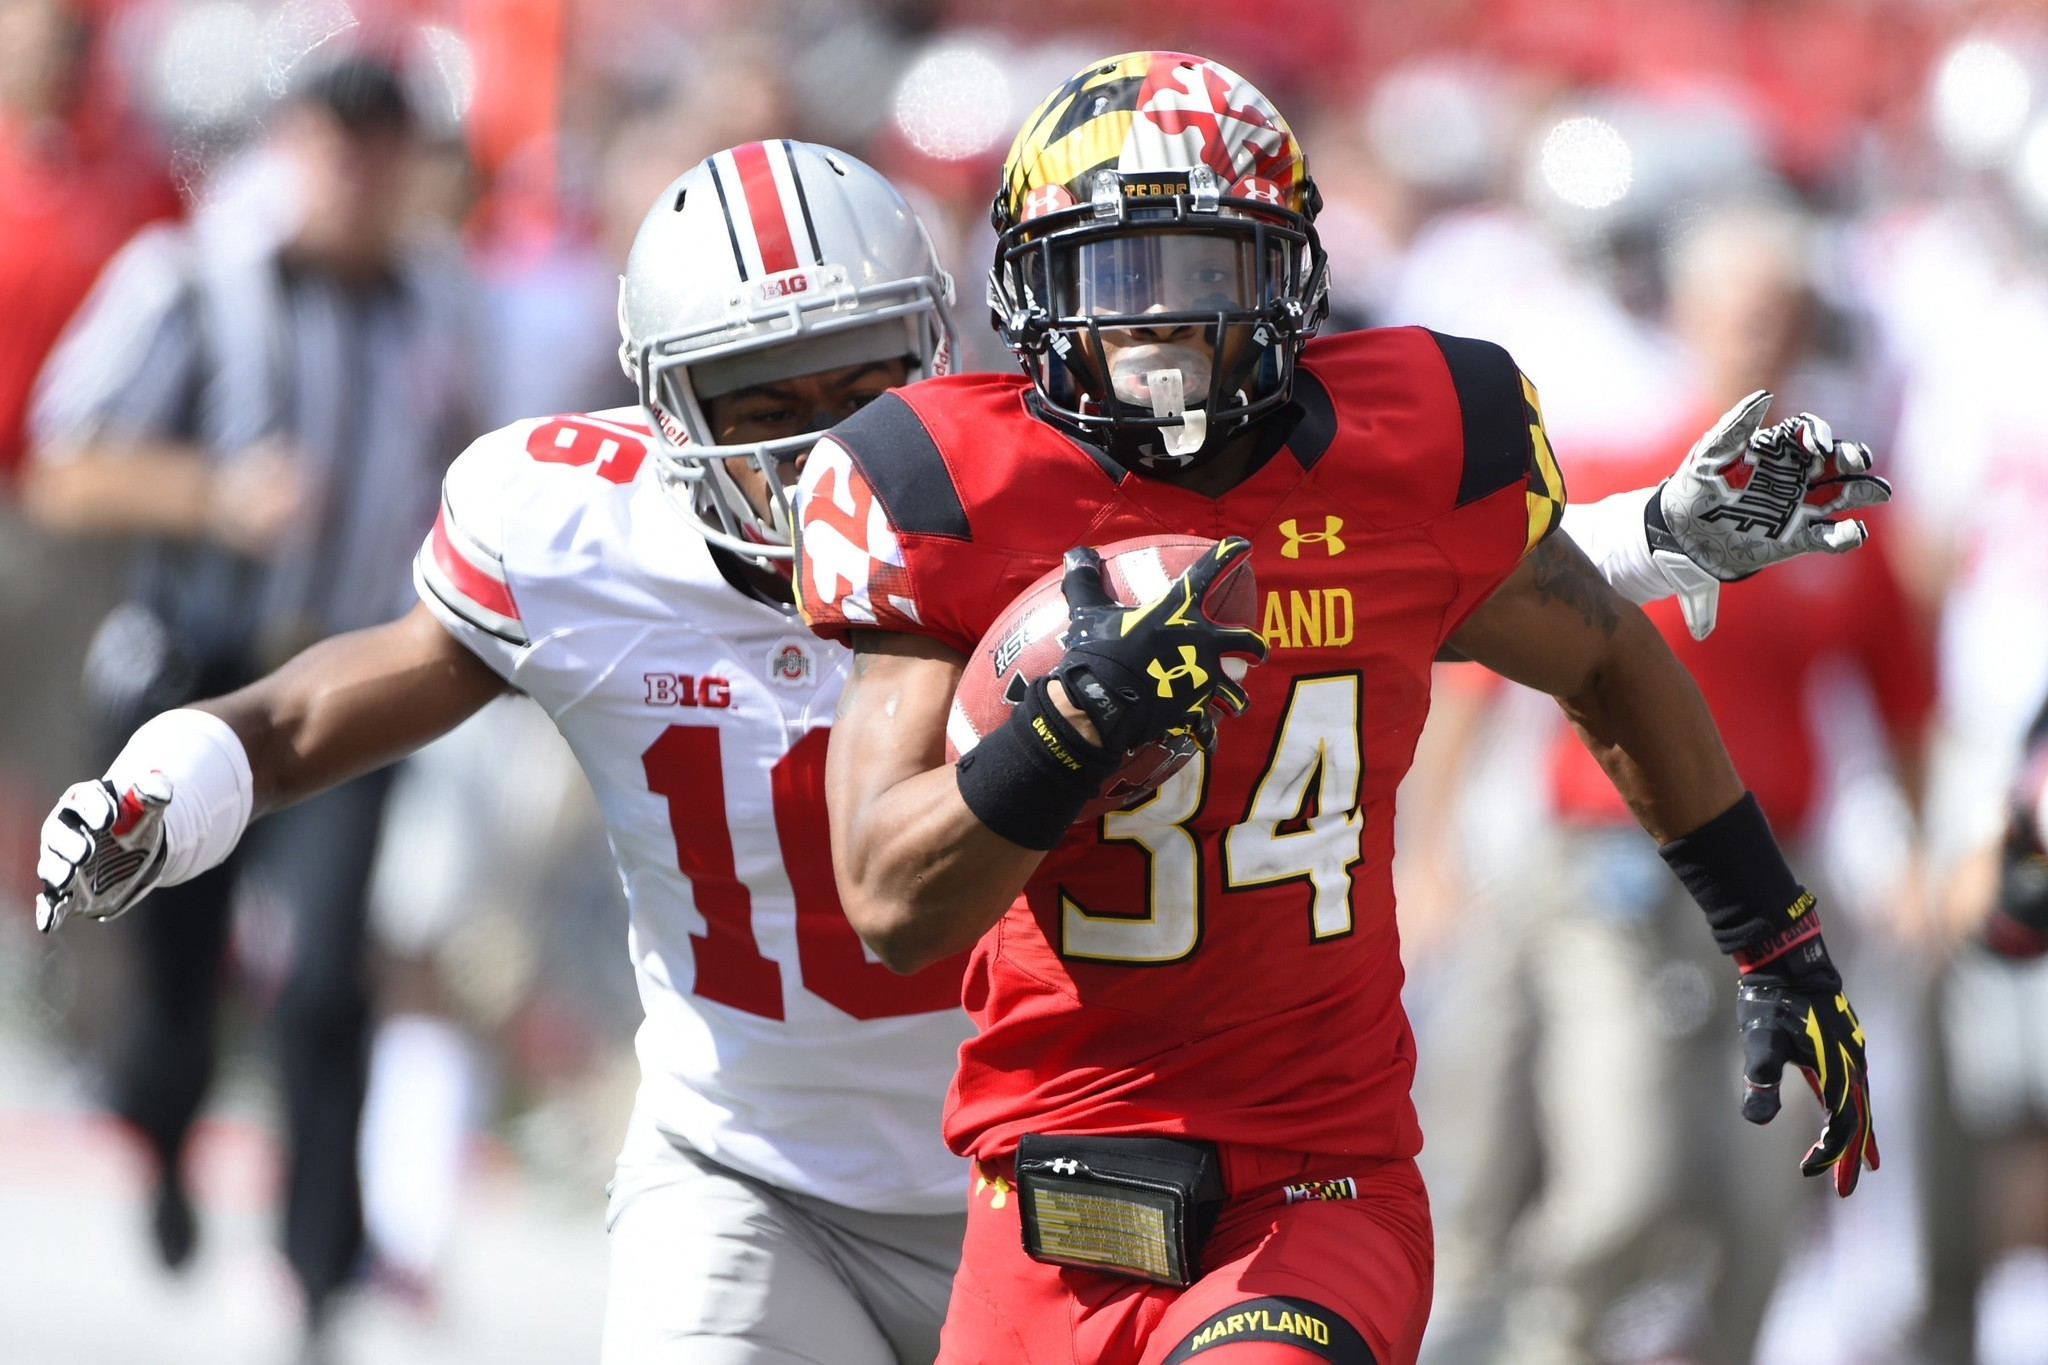 maryland football - photo #13